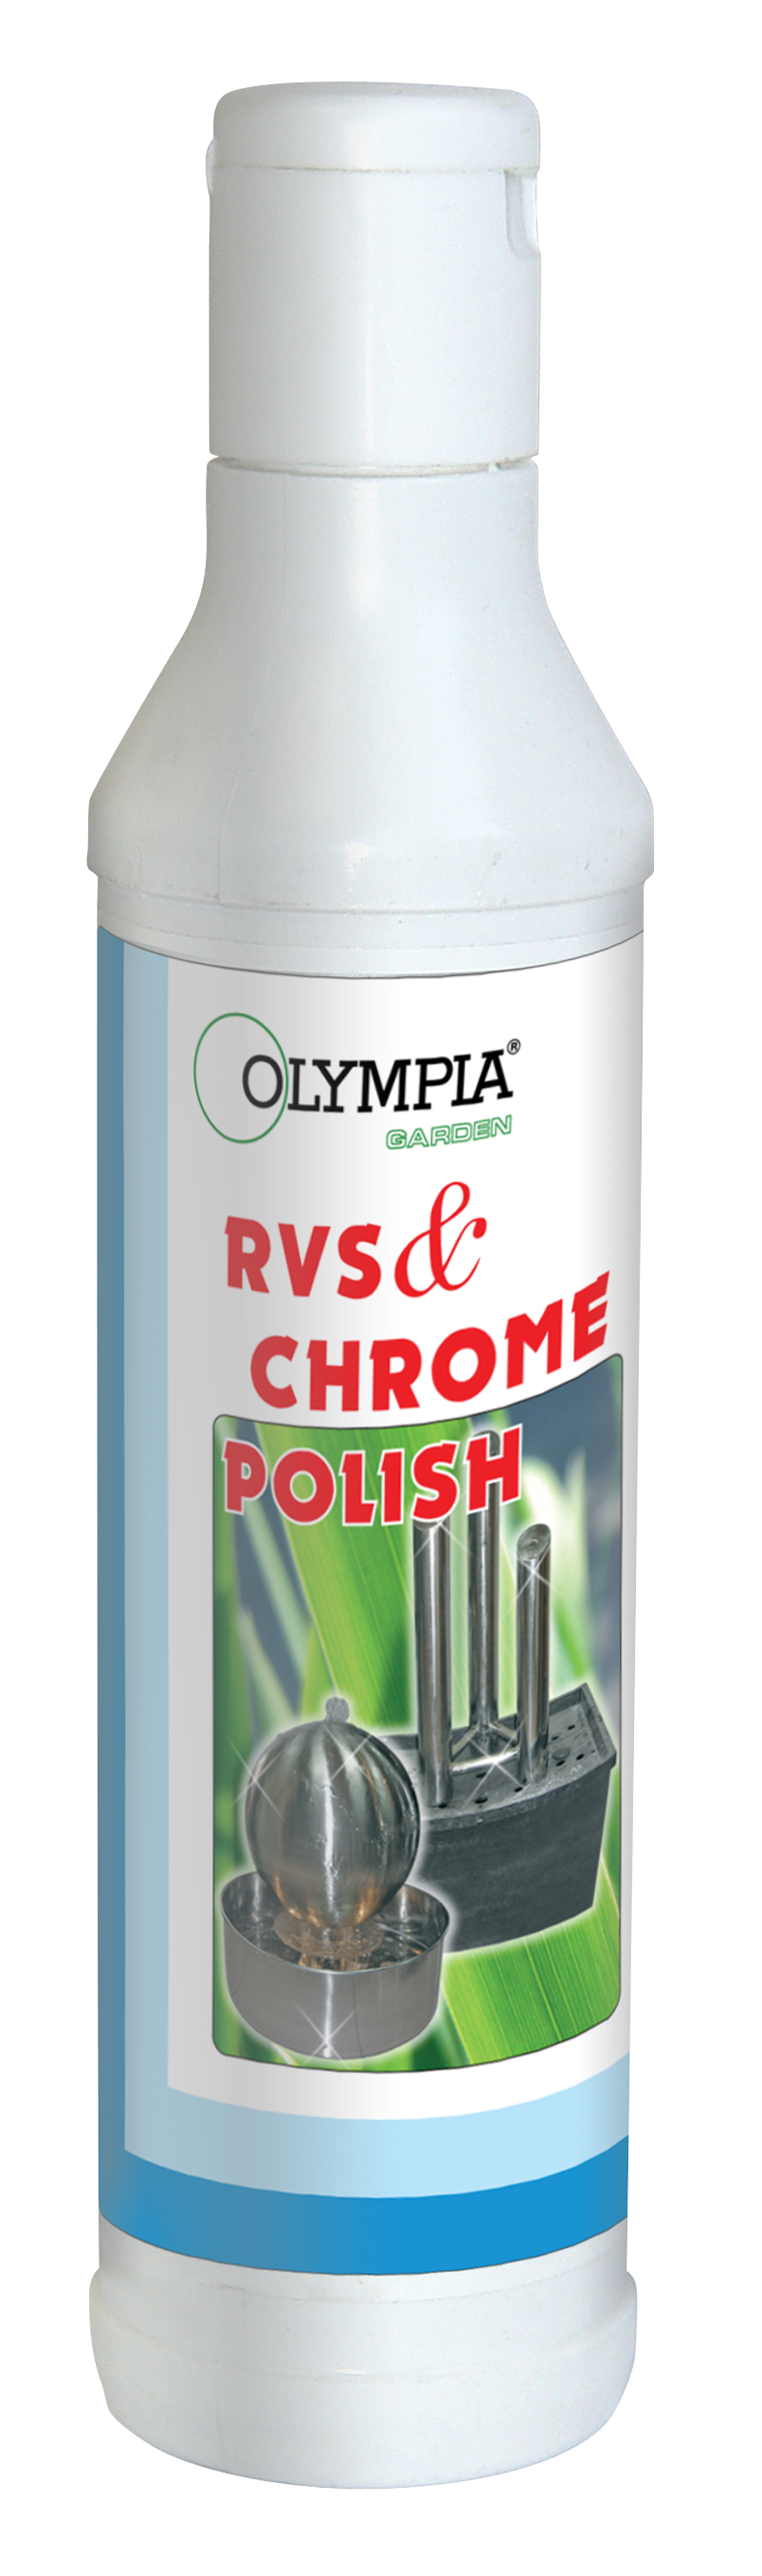 OLYMPIA RVS & CHROME POLISH